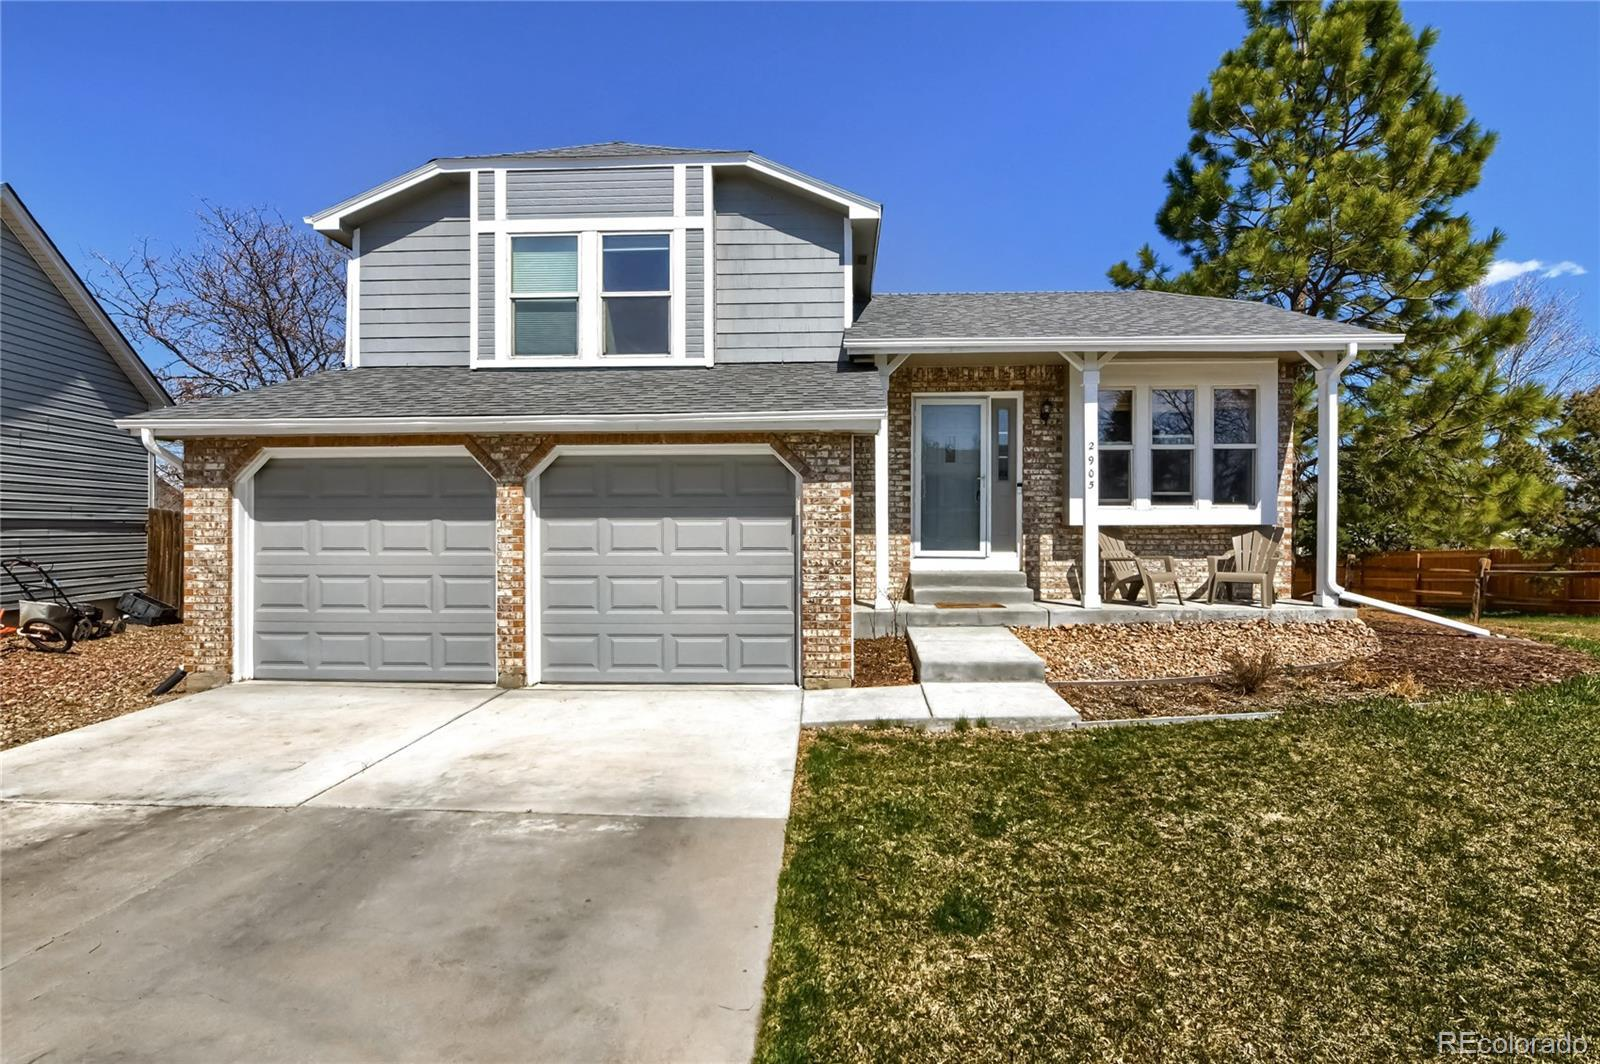 2905 S Andes Way, Aurora, CO 80013 - #: 6355507